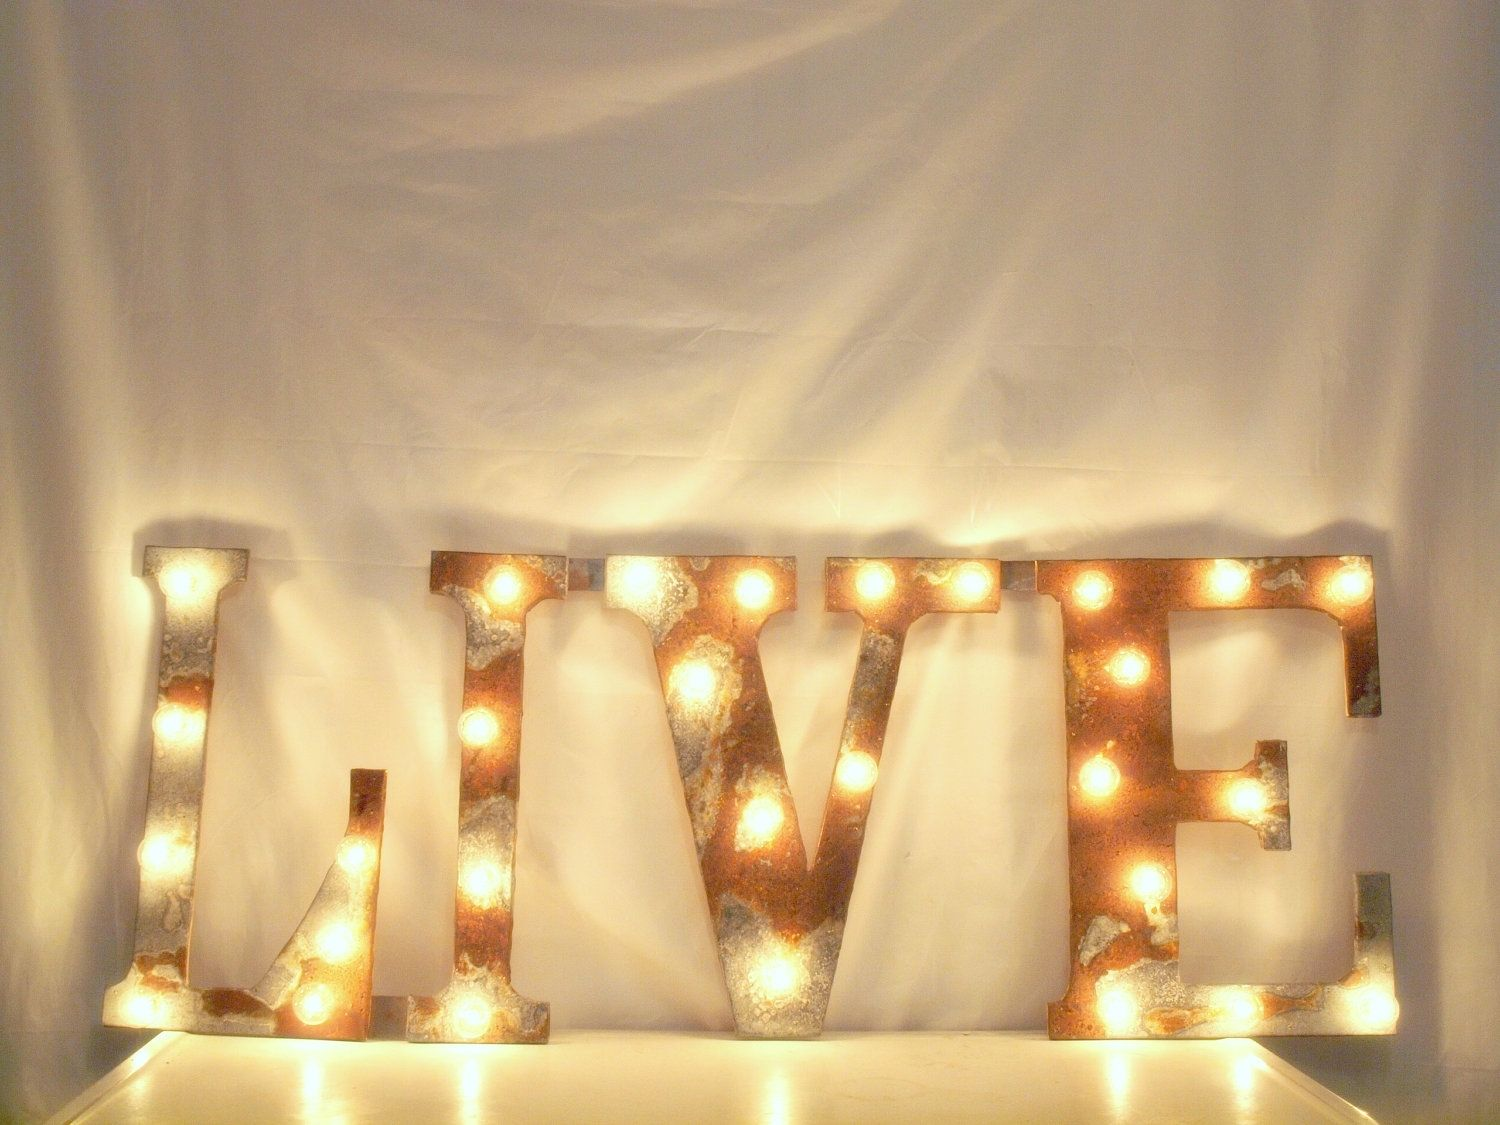 Hand Crafted Letter Wall Hanging Metal Letter Light Fixture 30 ...